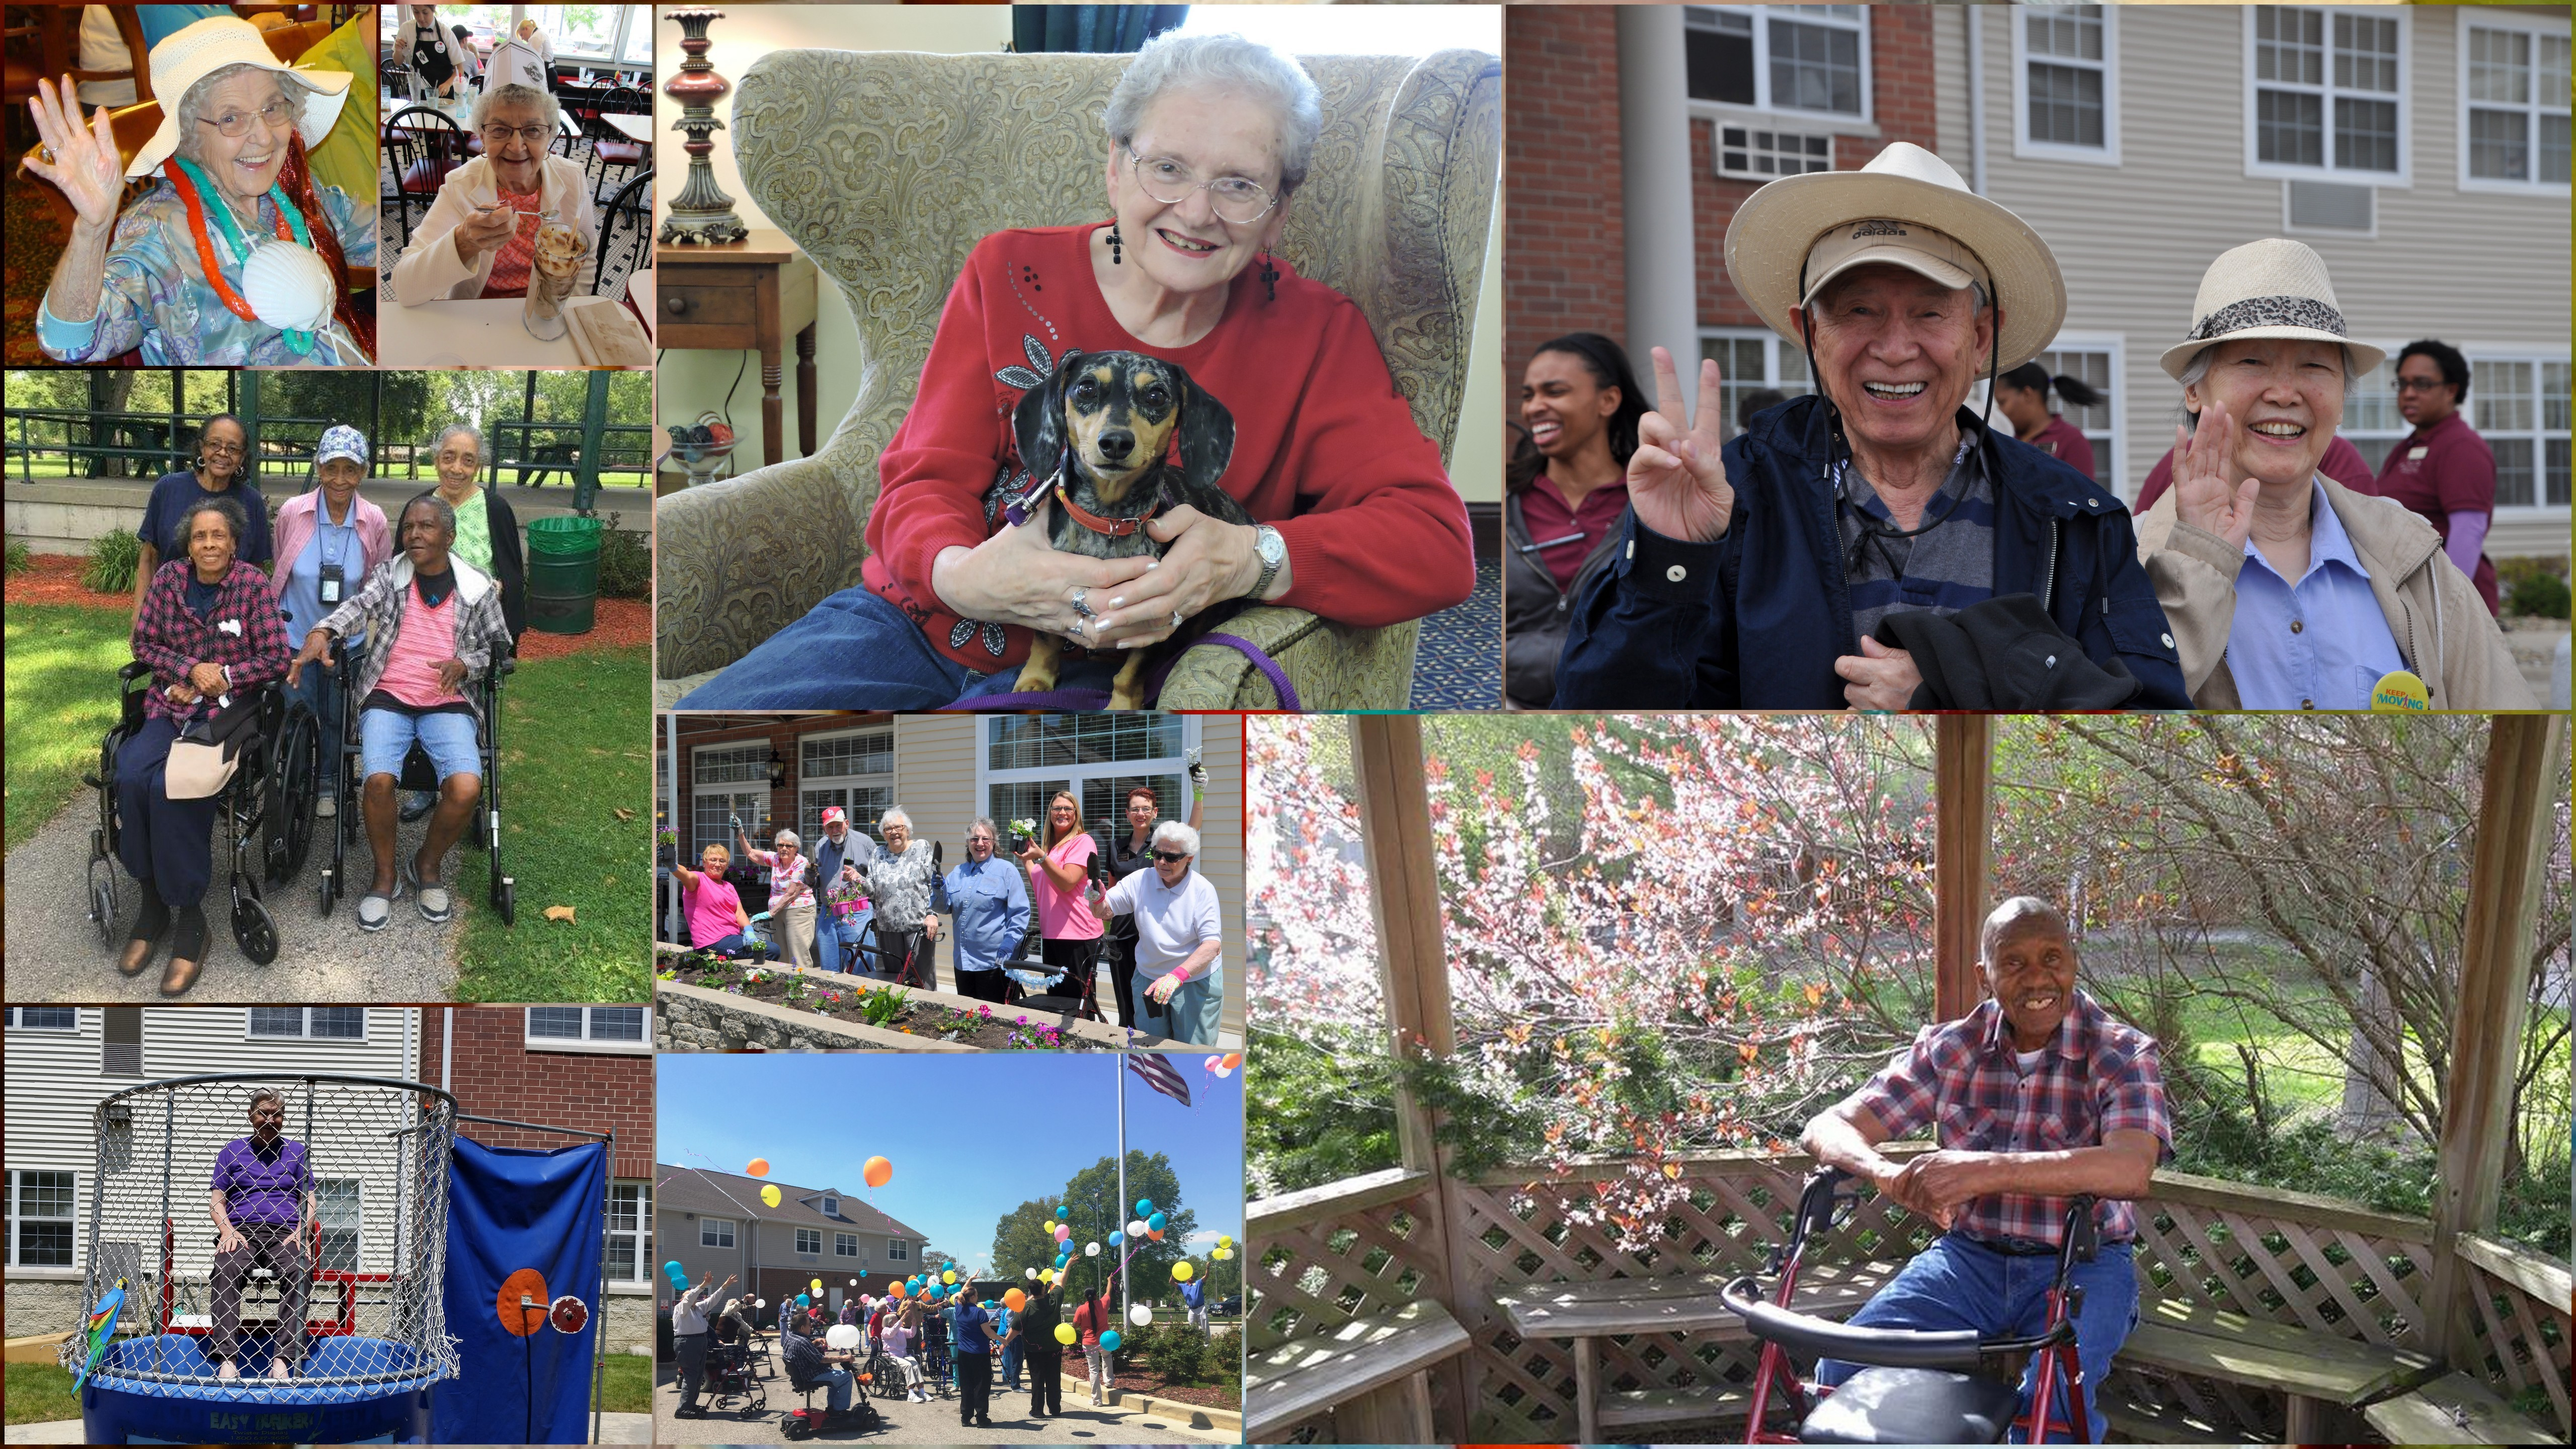 These photos from Gardant communities received an honorable mention in the 2016 AALC Photo Contest.